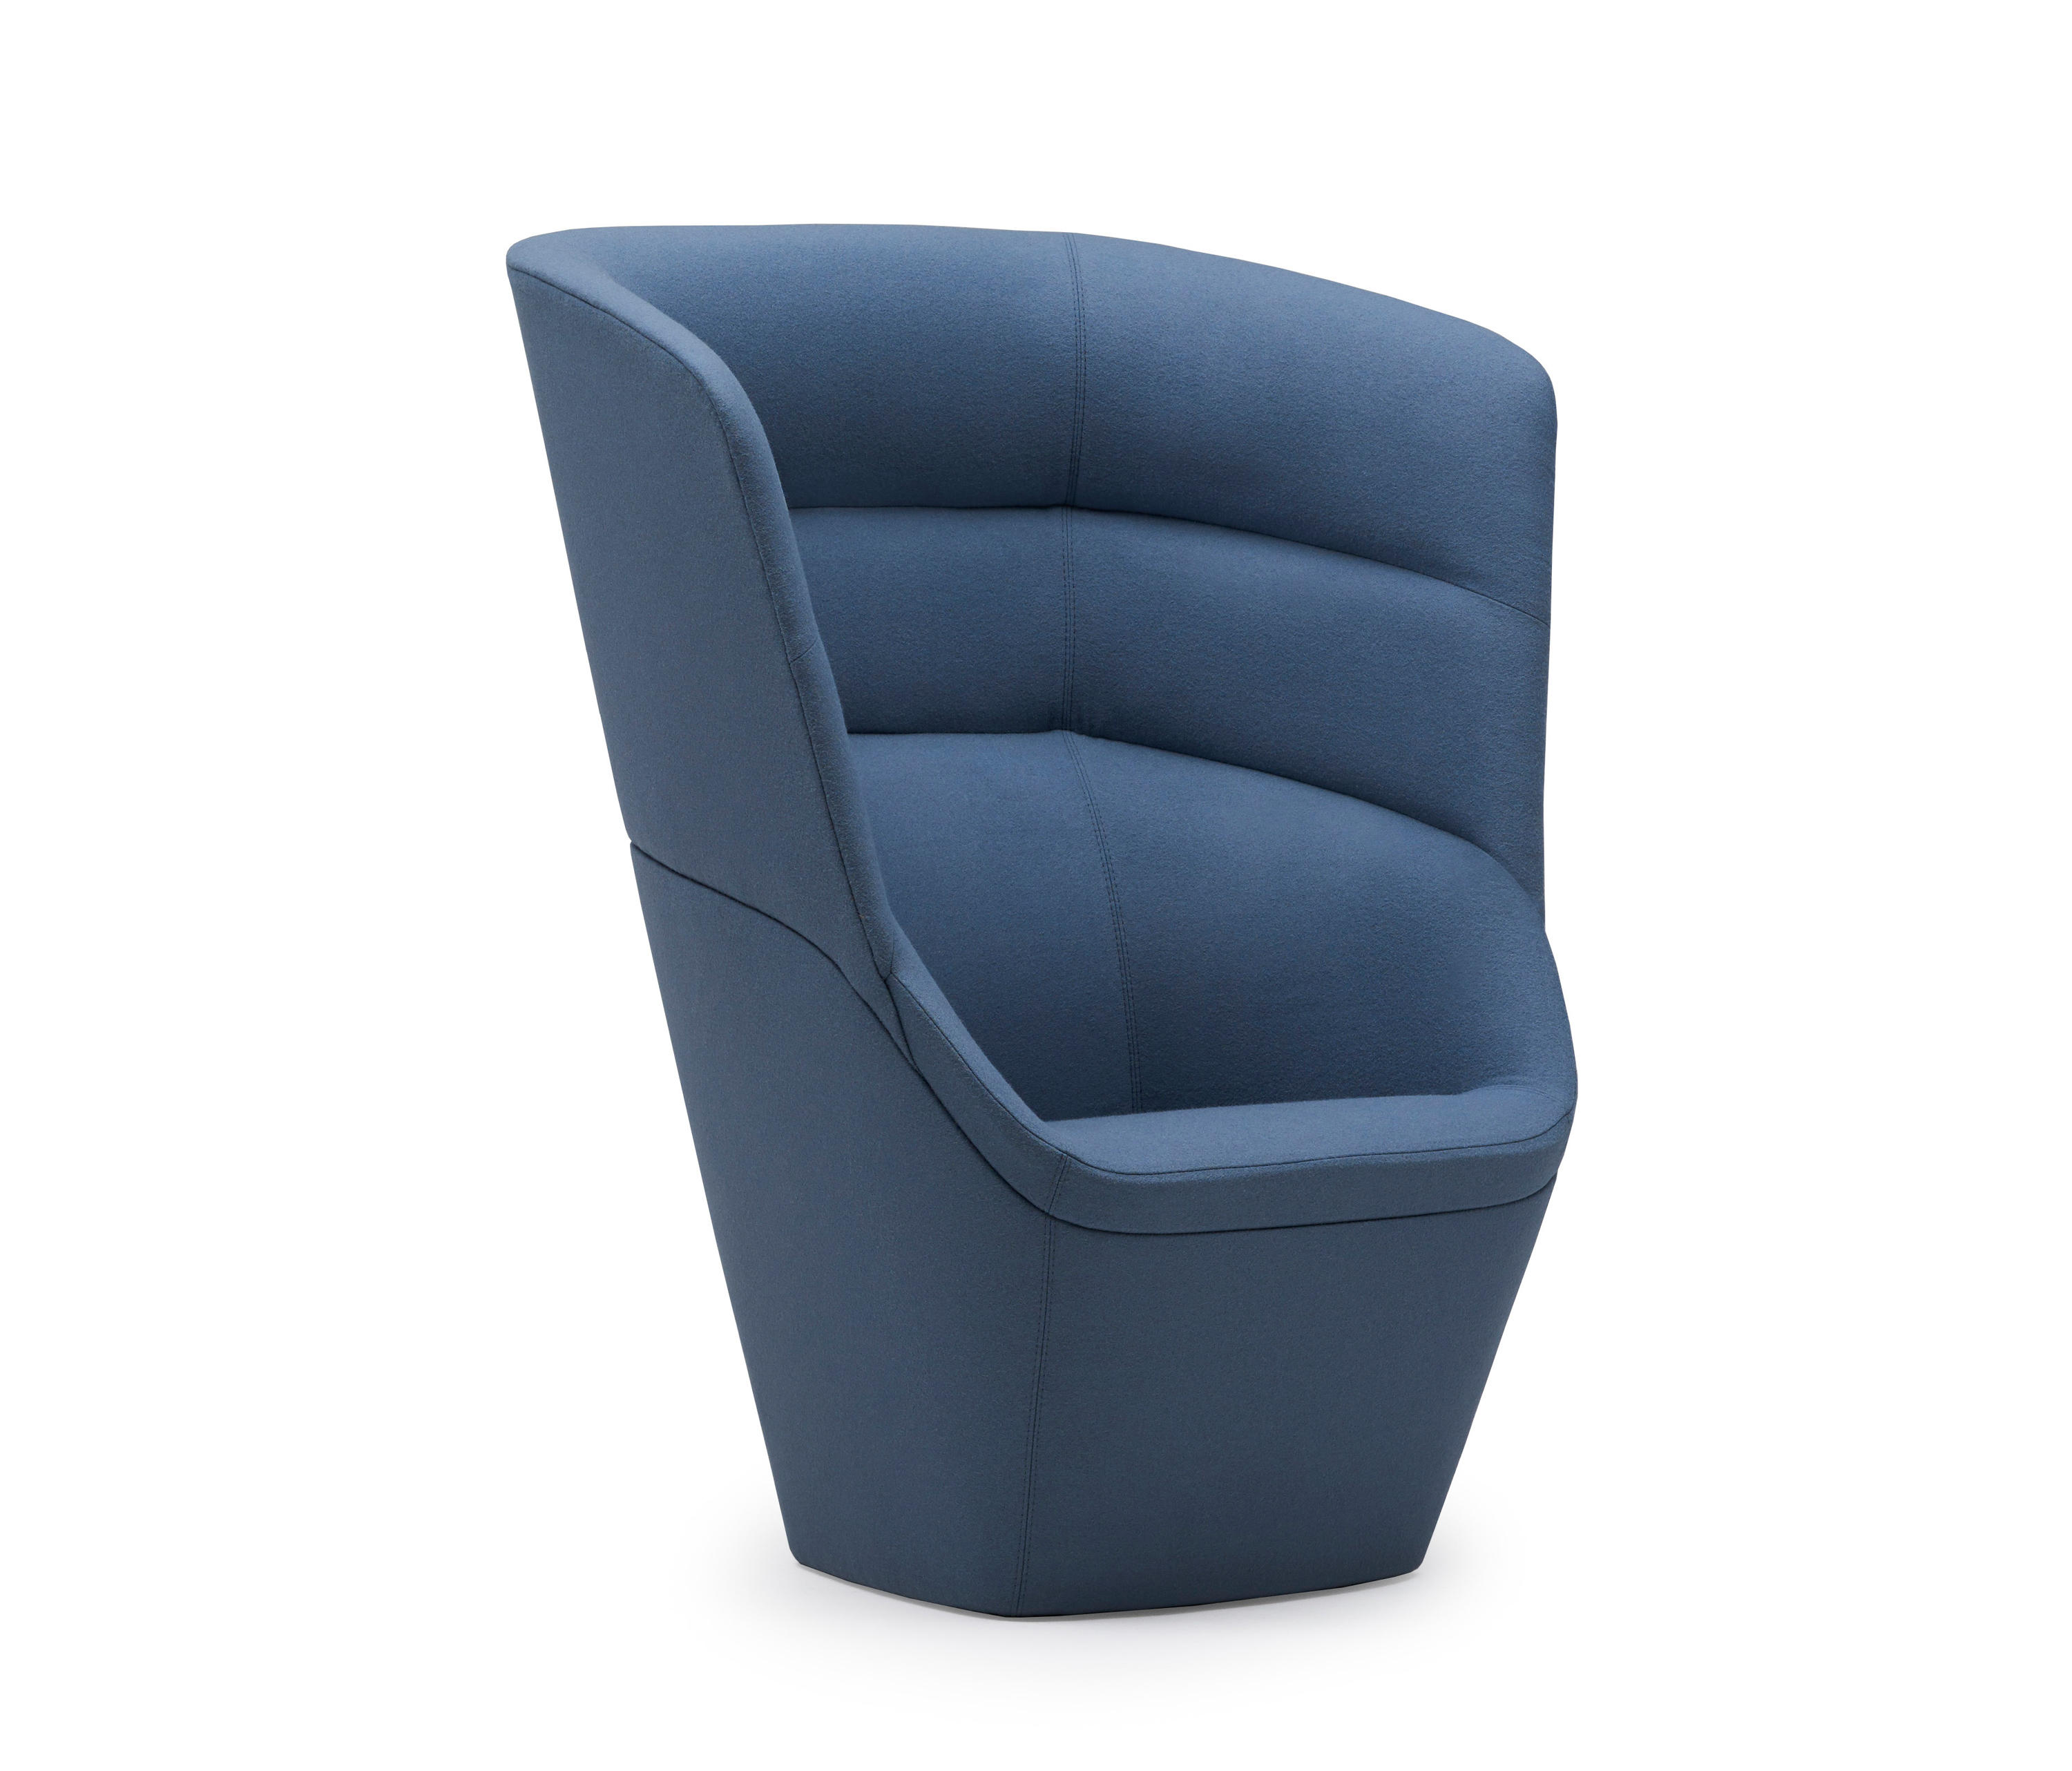 Soft Privacy Armchairs From Davis Furniture Architonic